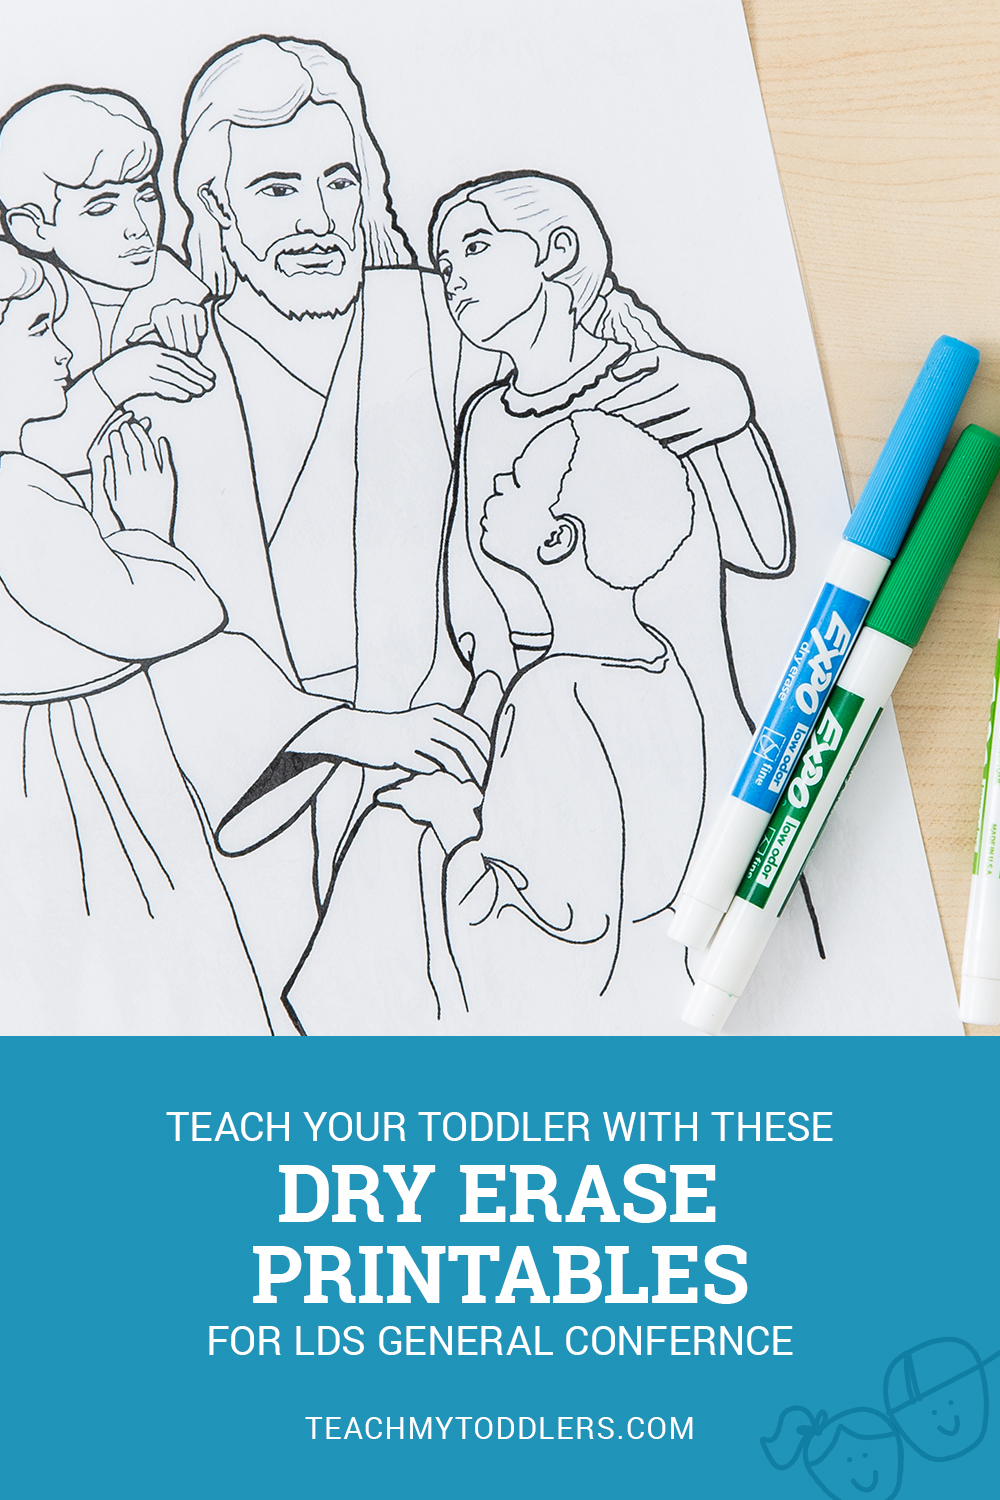 A printable image of Jesus Christ with children for LDS General Conference with dry erase markers